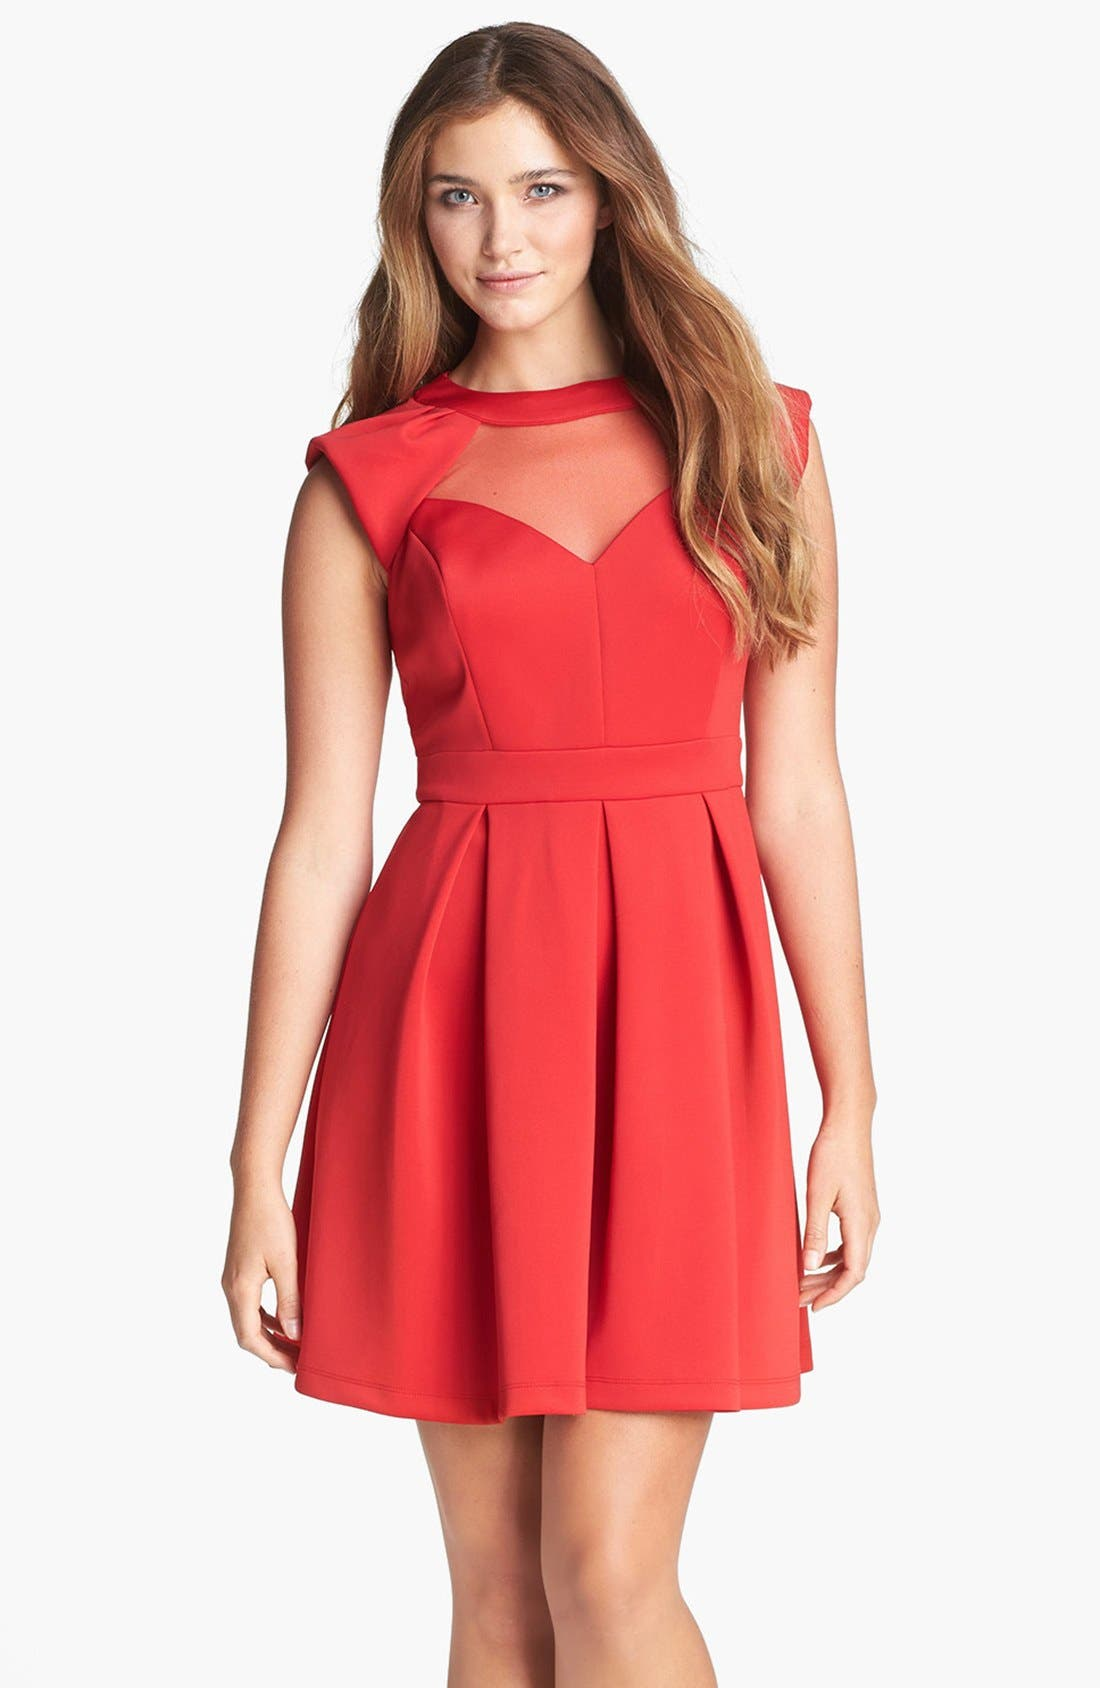 Main Image - Hailey by Adrianna Papell Illusion Cutout Fit & Flare Dress